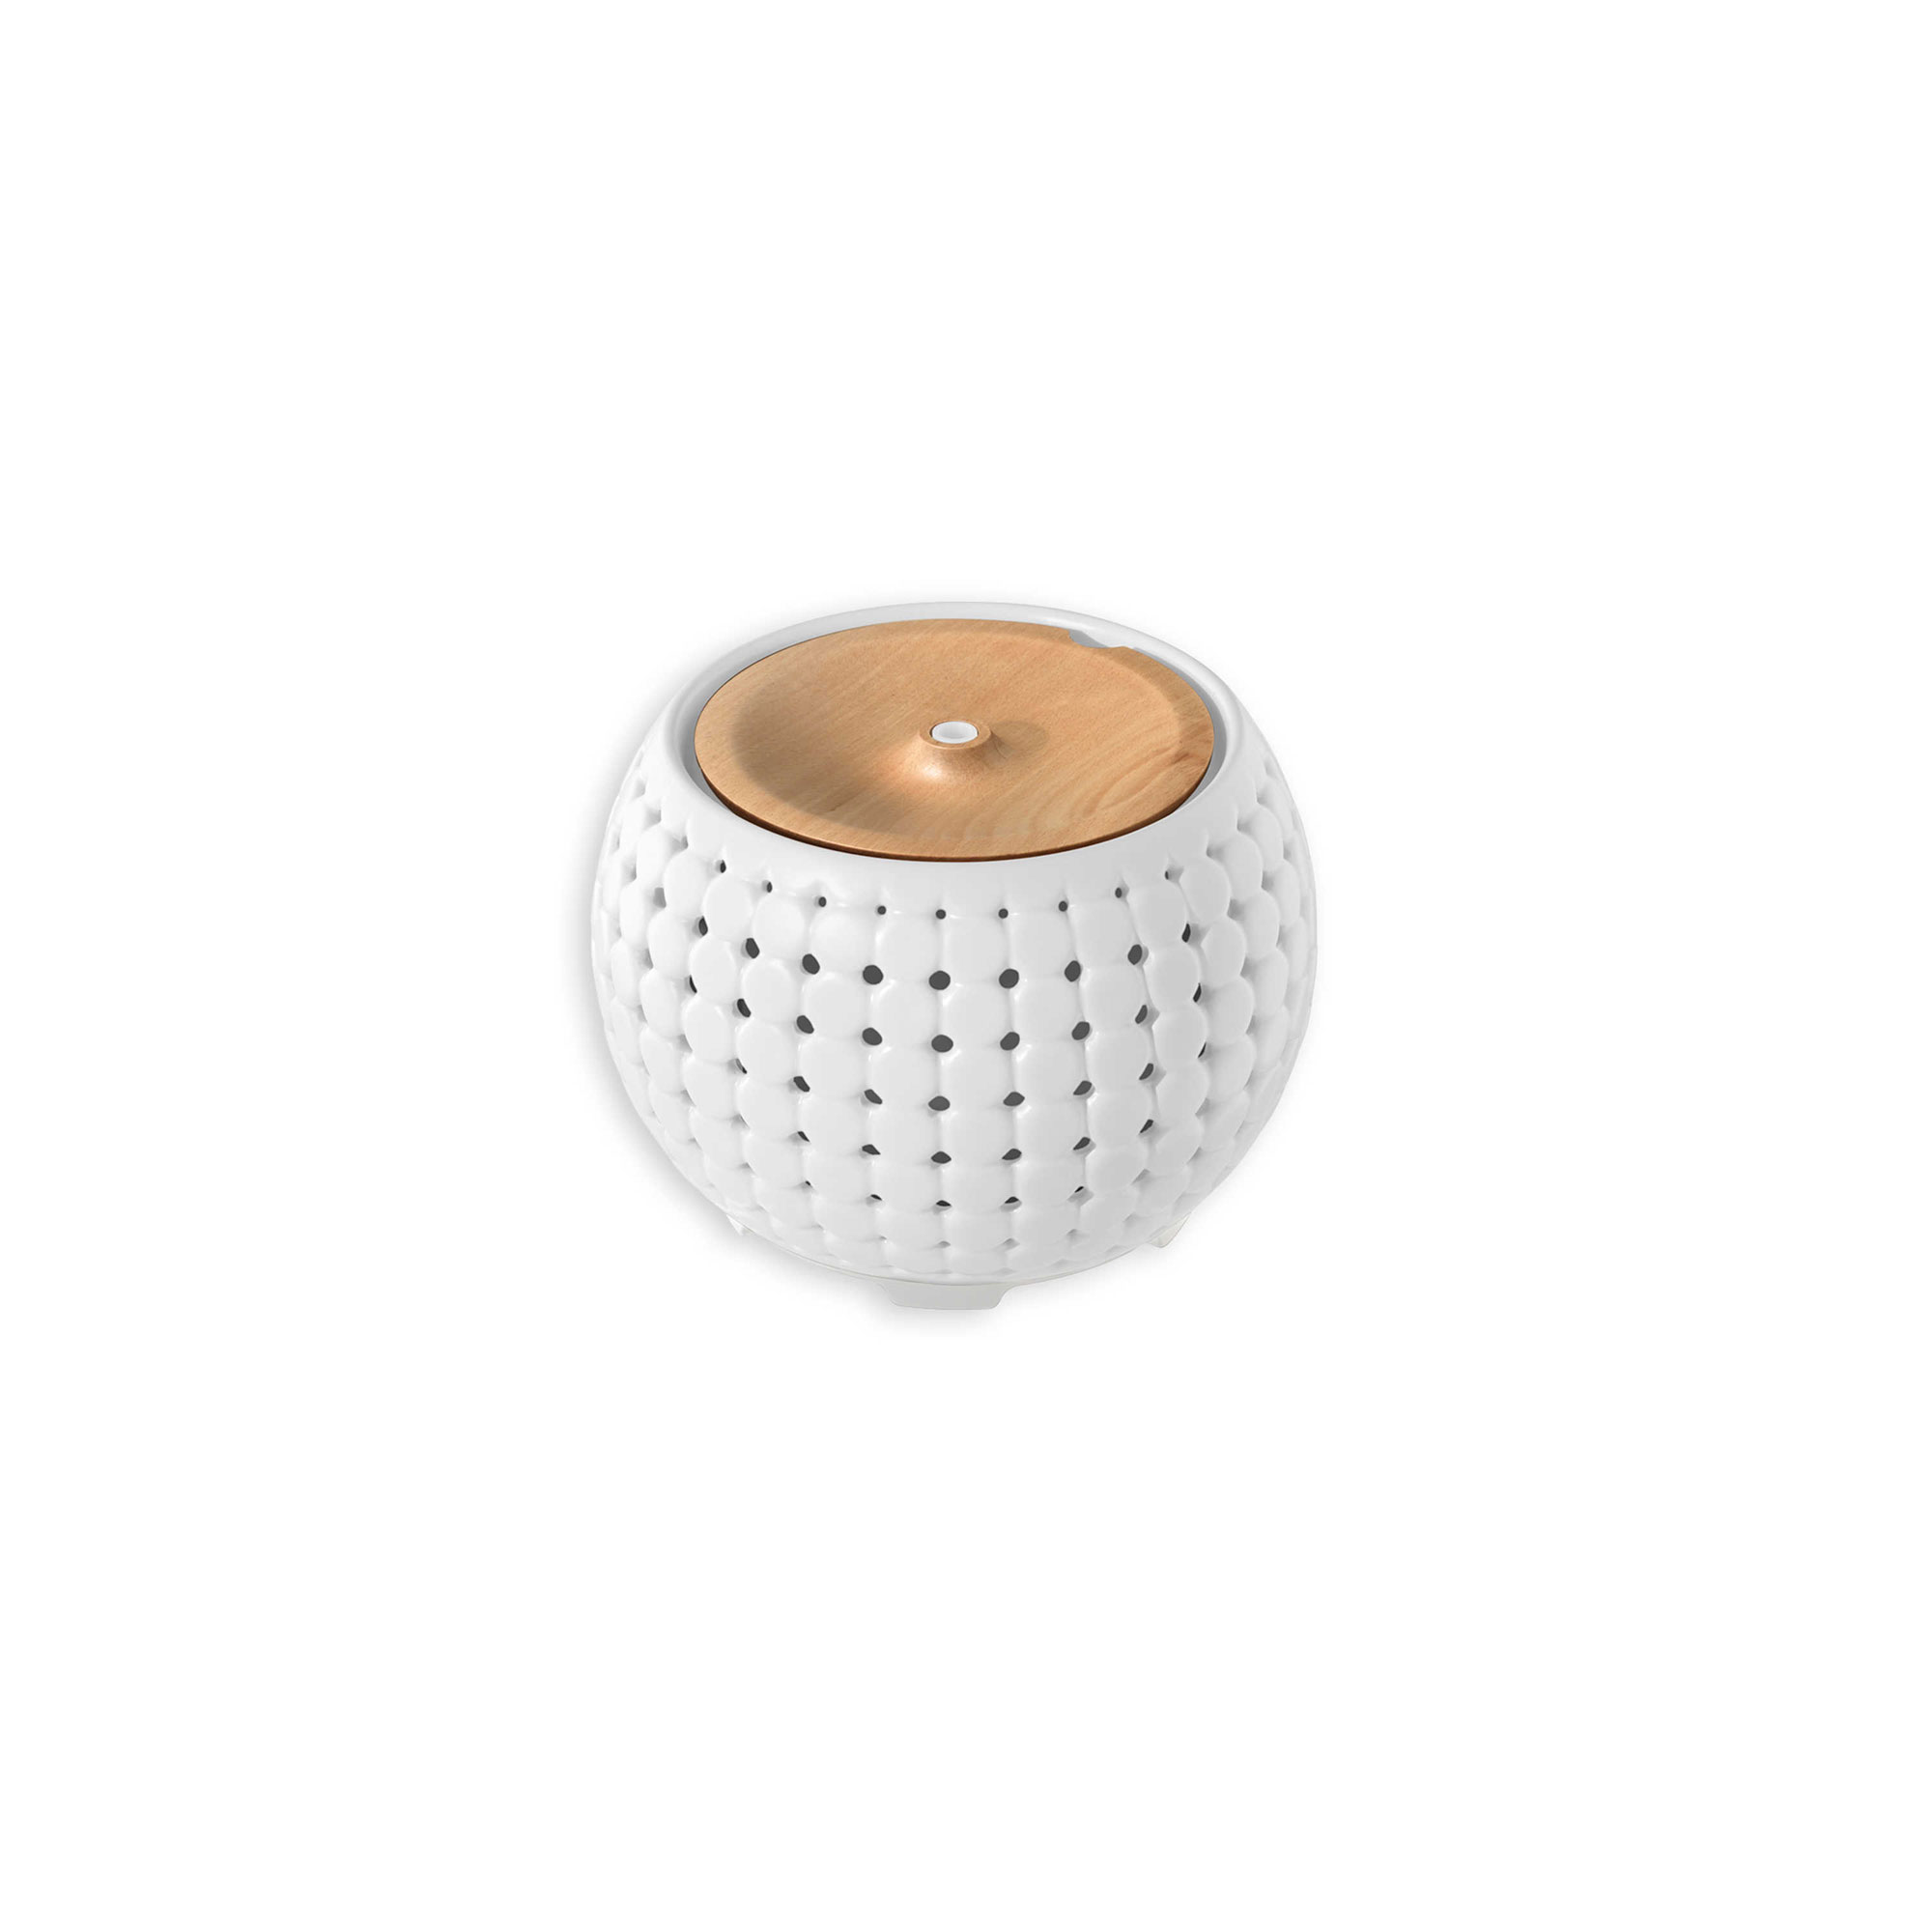 Homedics Ellia Gather Ultrasonic Diffuser